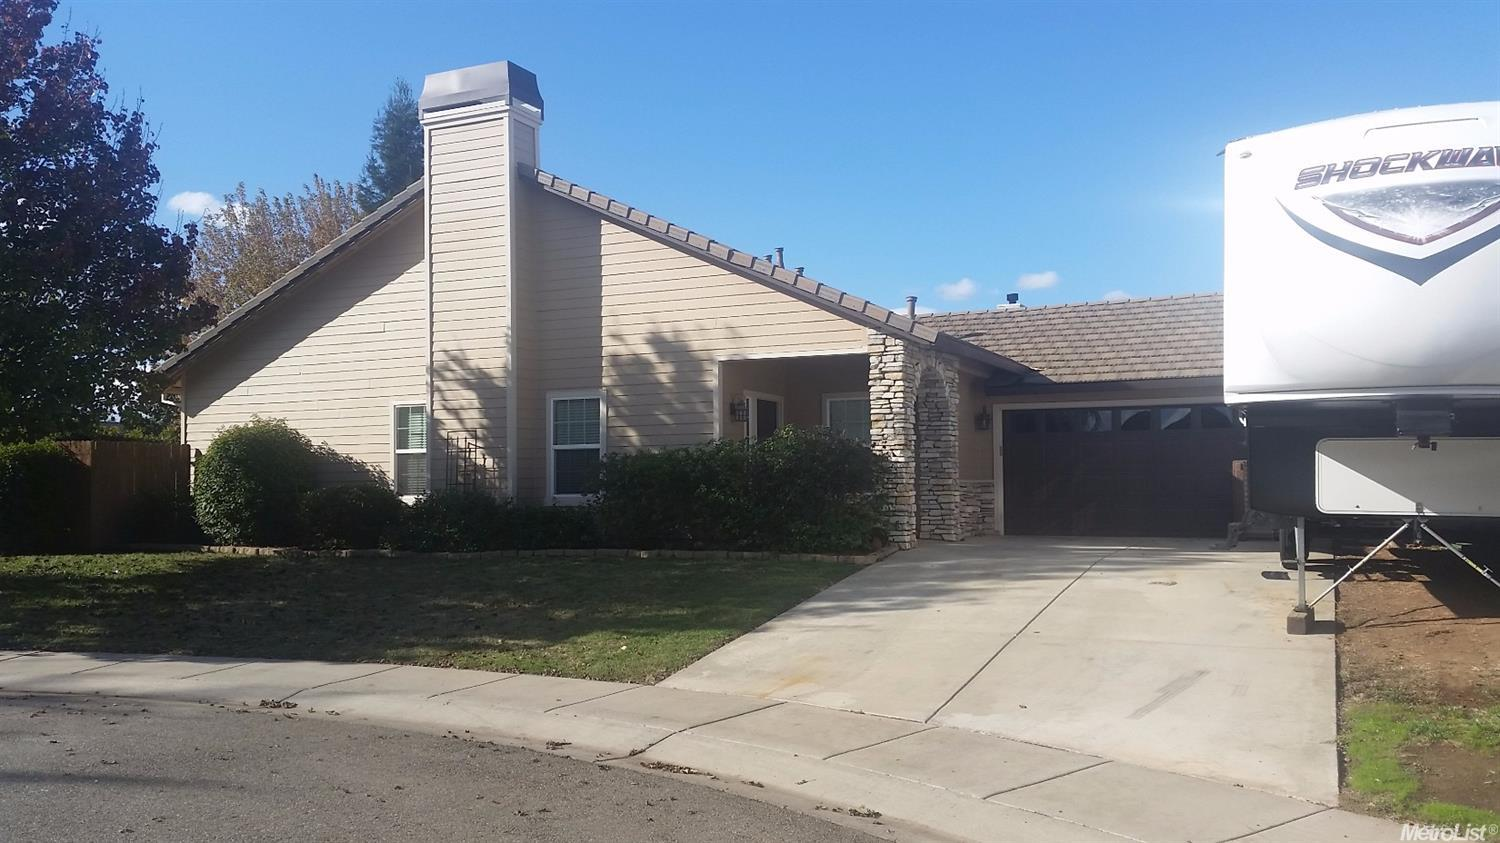 521 Star Ct, Wheatland, CA 95692